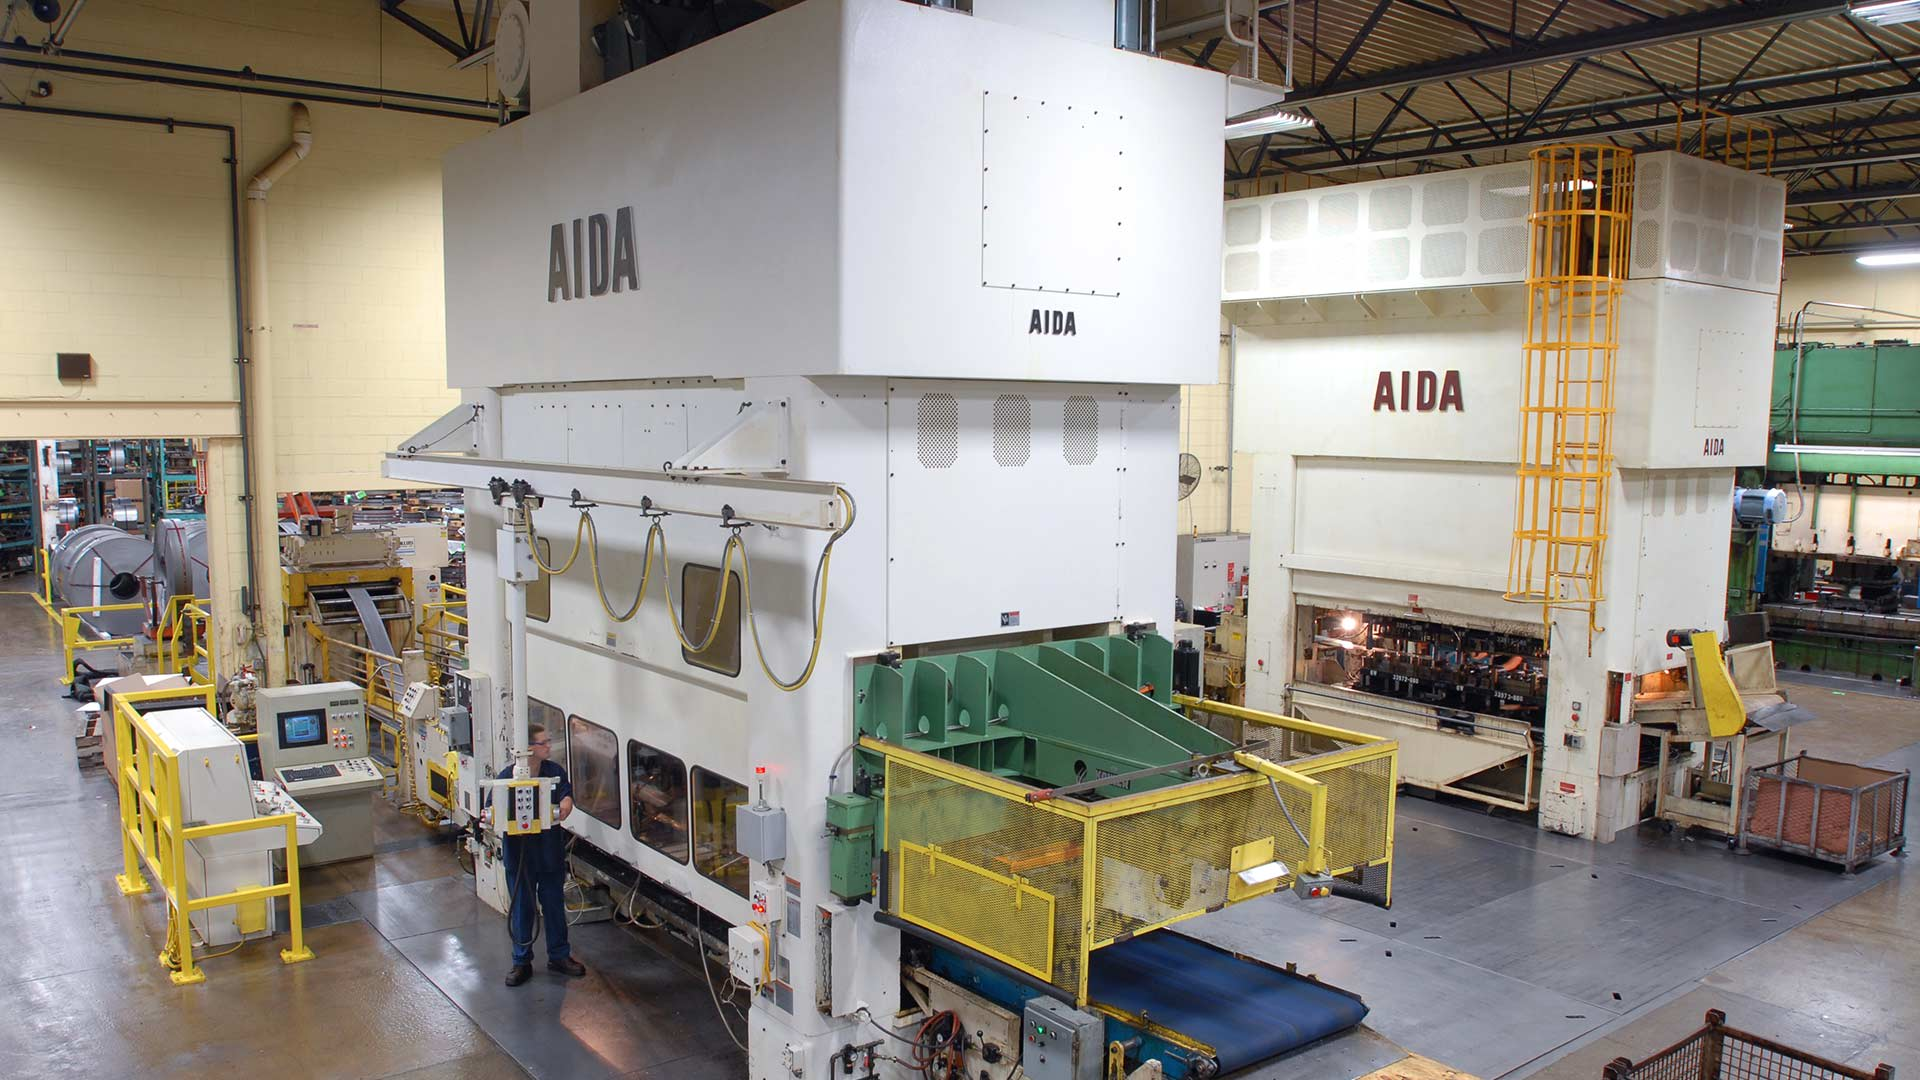 PMX-L2-8000 and PMX-L2-6000, 800 and 600 Ton Progressive Die Stamping Presses